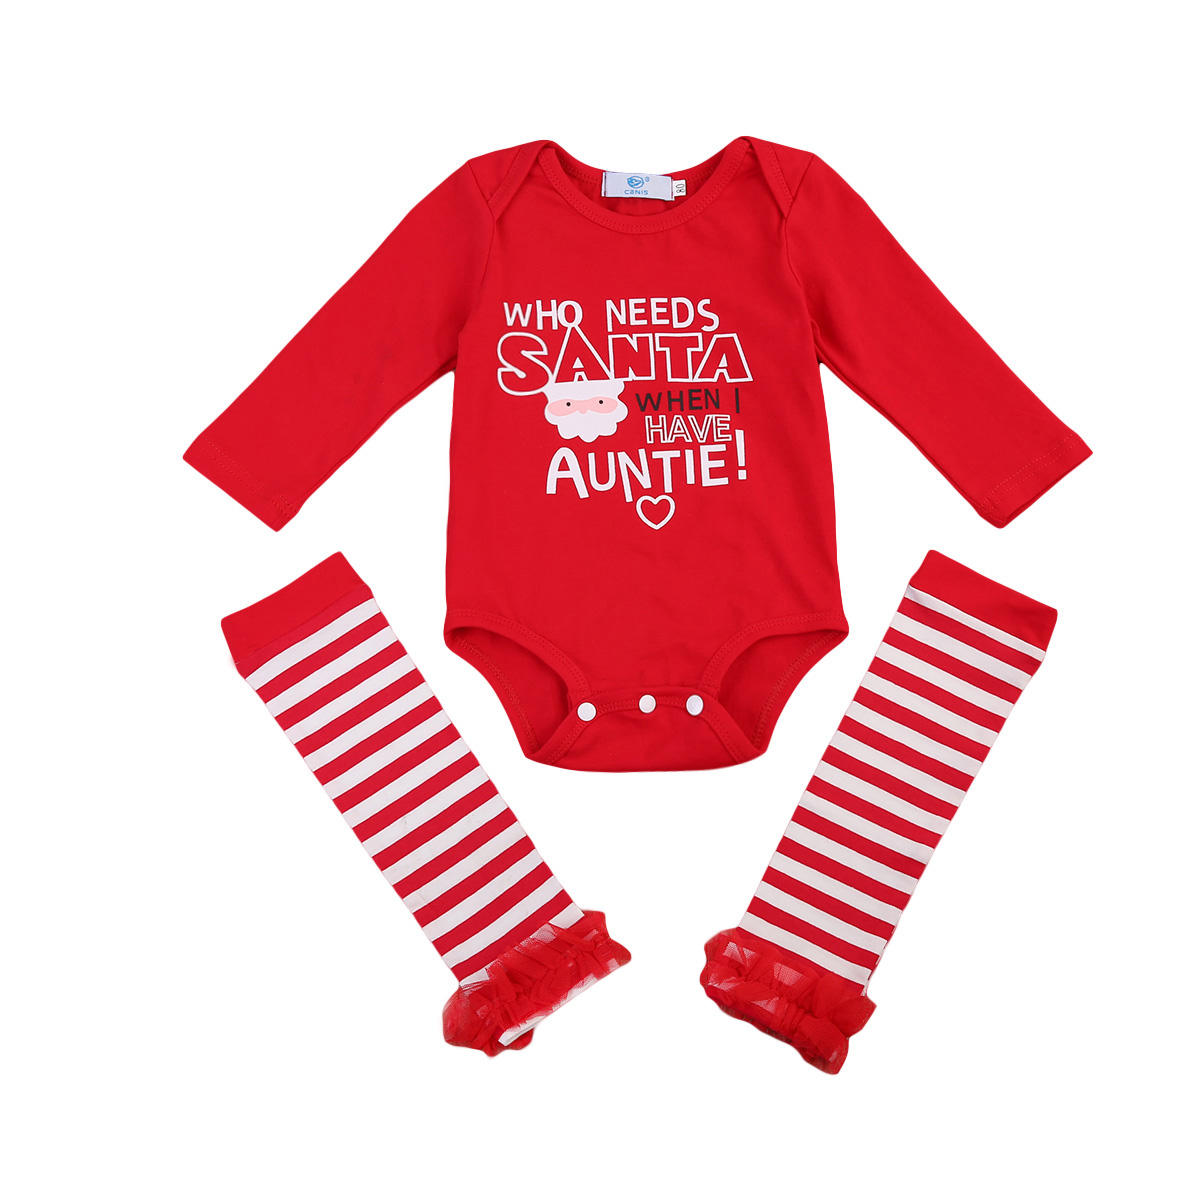 2017 New Brand 2PCs Toddler Infant Newborn Christmas Baby Girls Clothes Bodysuit Leg Warmers Outfits Santa Set 0-24M pink newborn infant baby girls clothes short sleeve bodysuit striped leg warmers headband 3pcs outfit bebek clothing set 0 18m